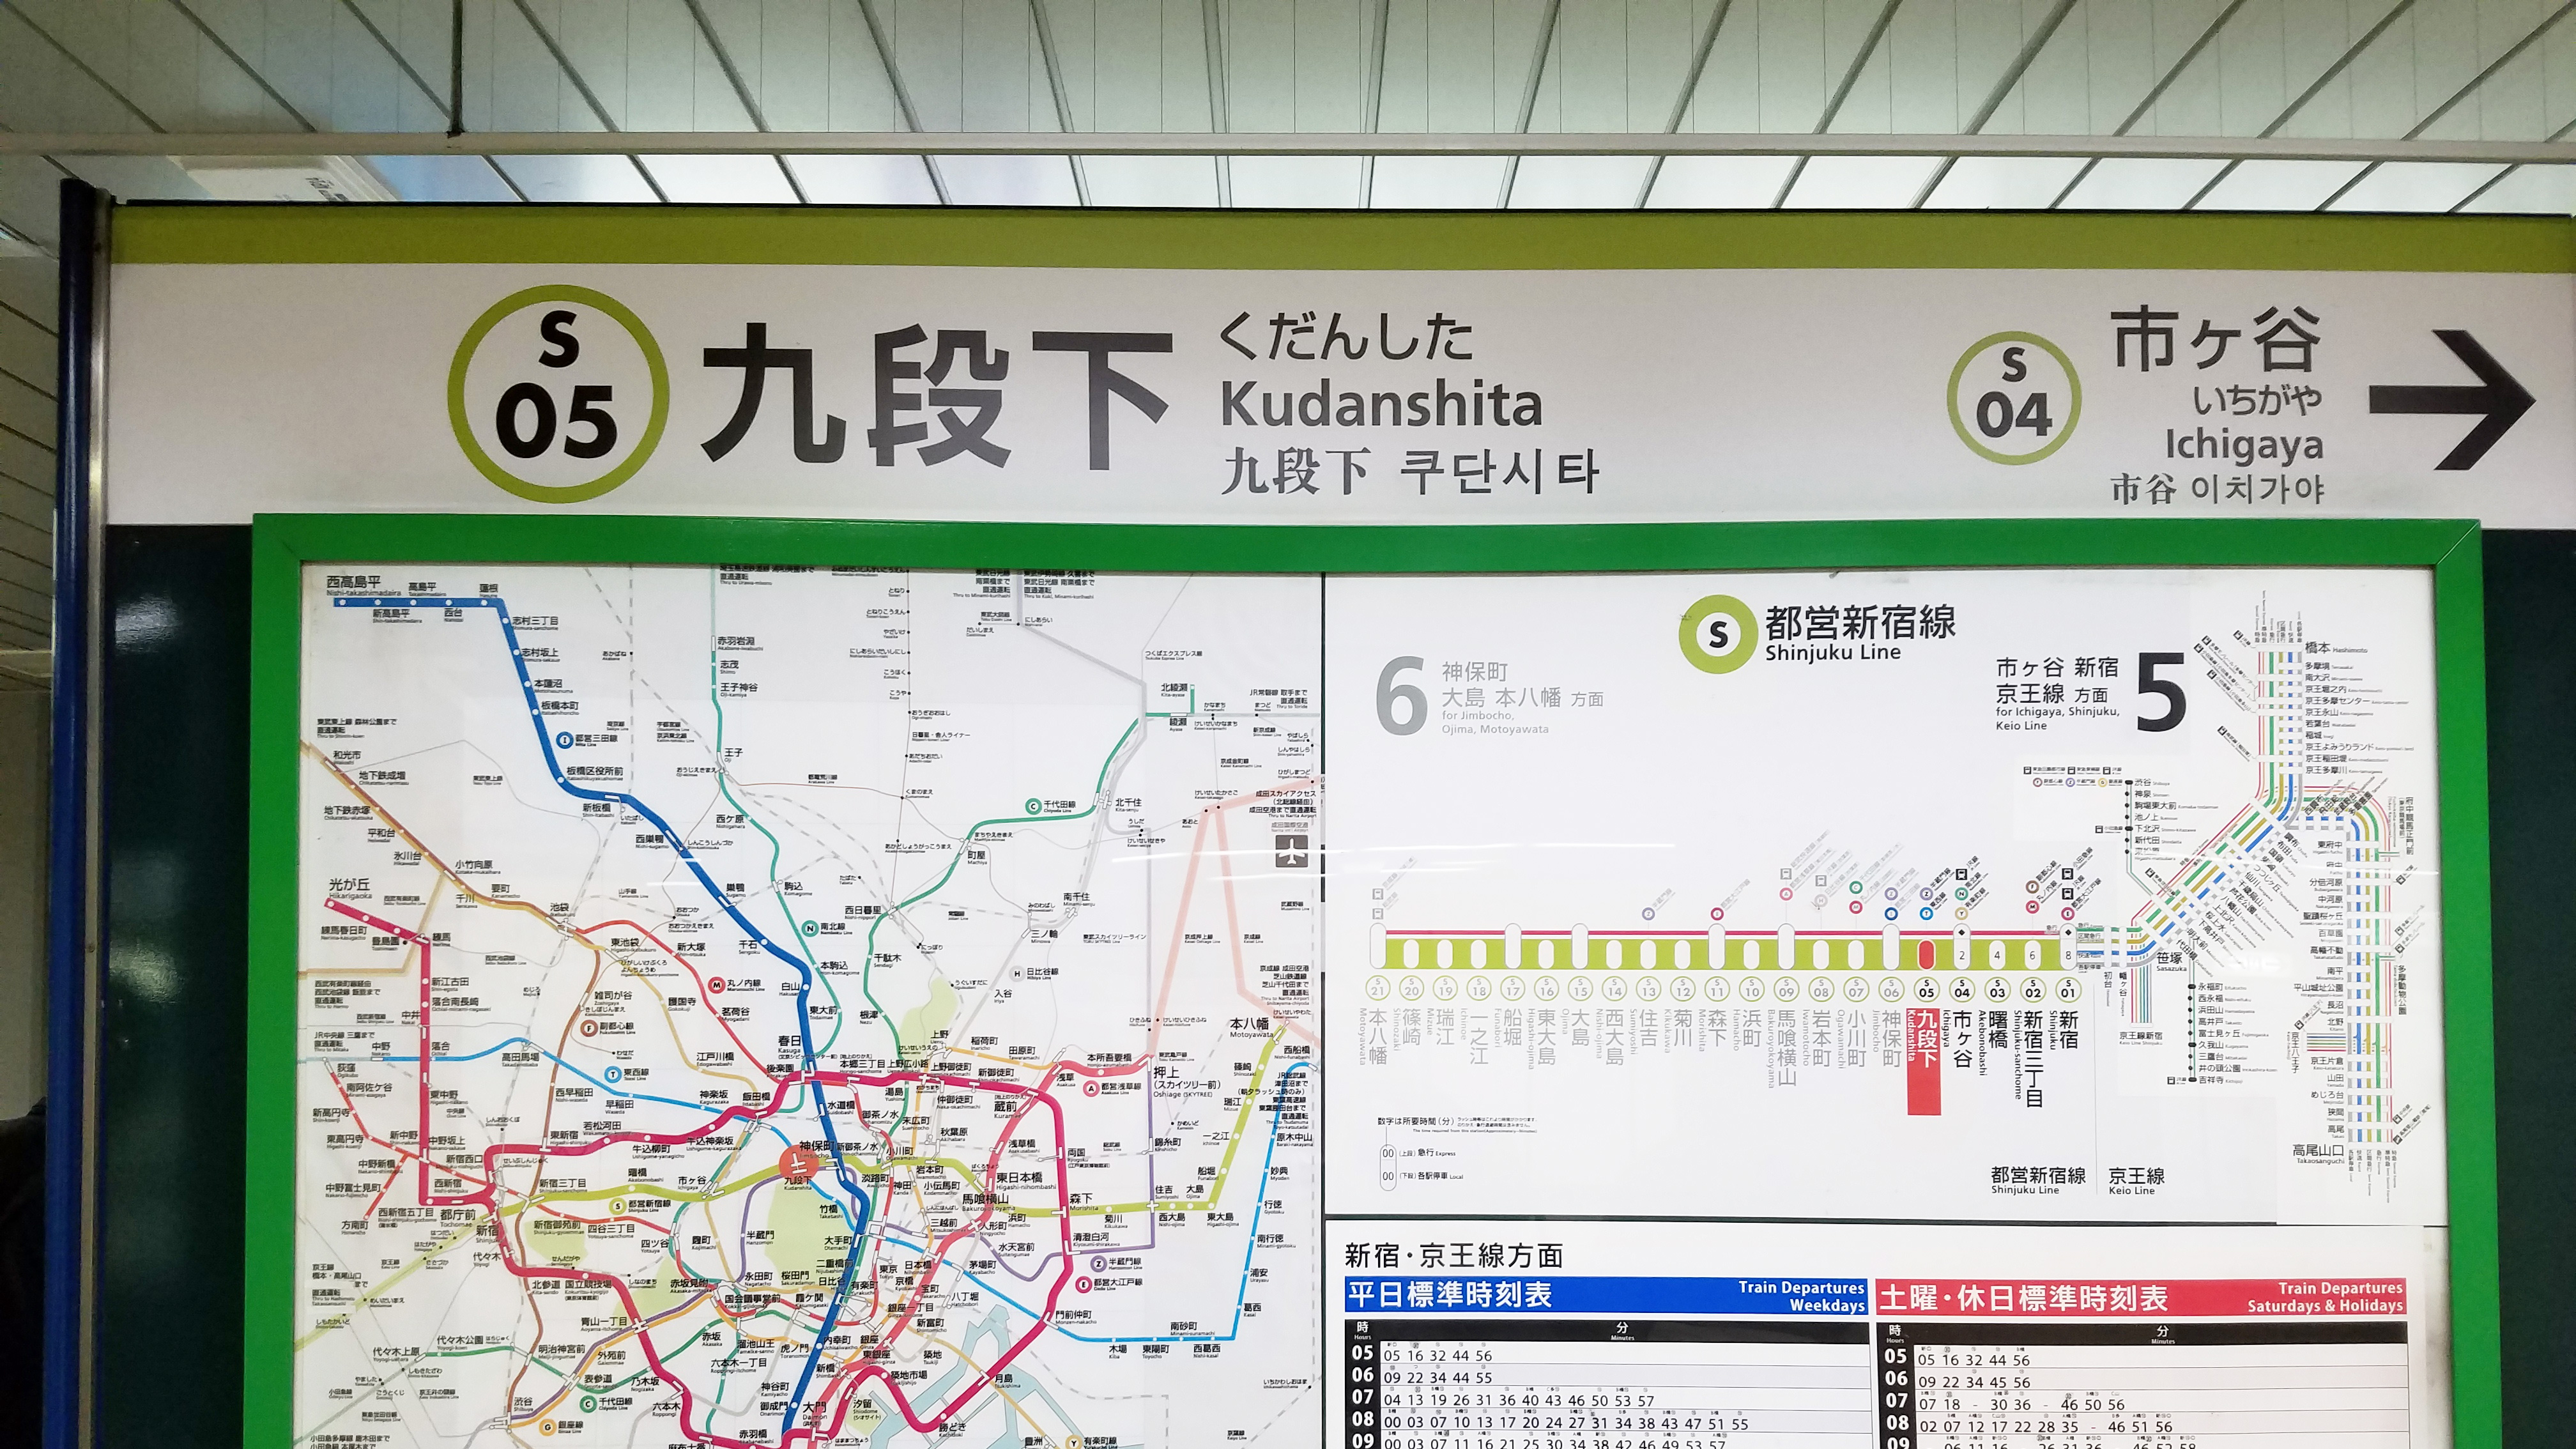 Toei Subway Map Pdf.File Toei Subway S05 Kudanshita Station Sign 20171206 185613 Jpg